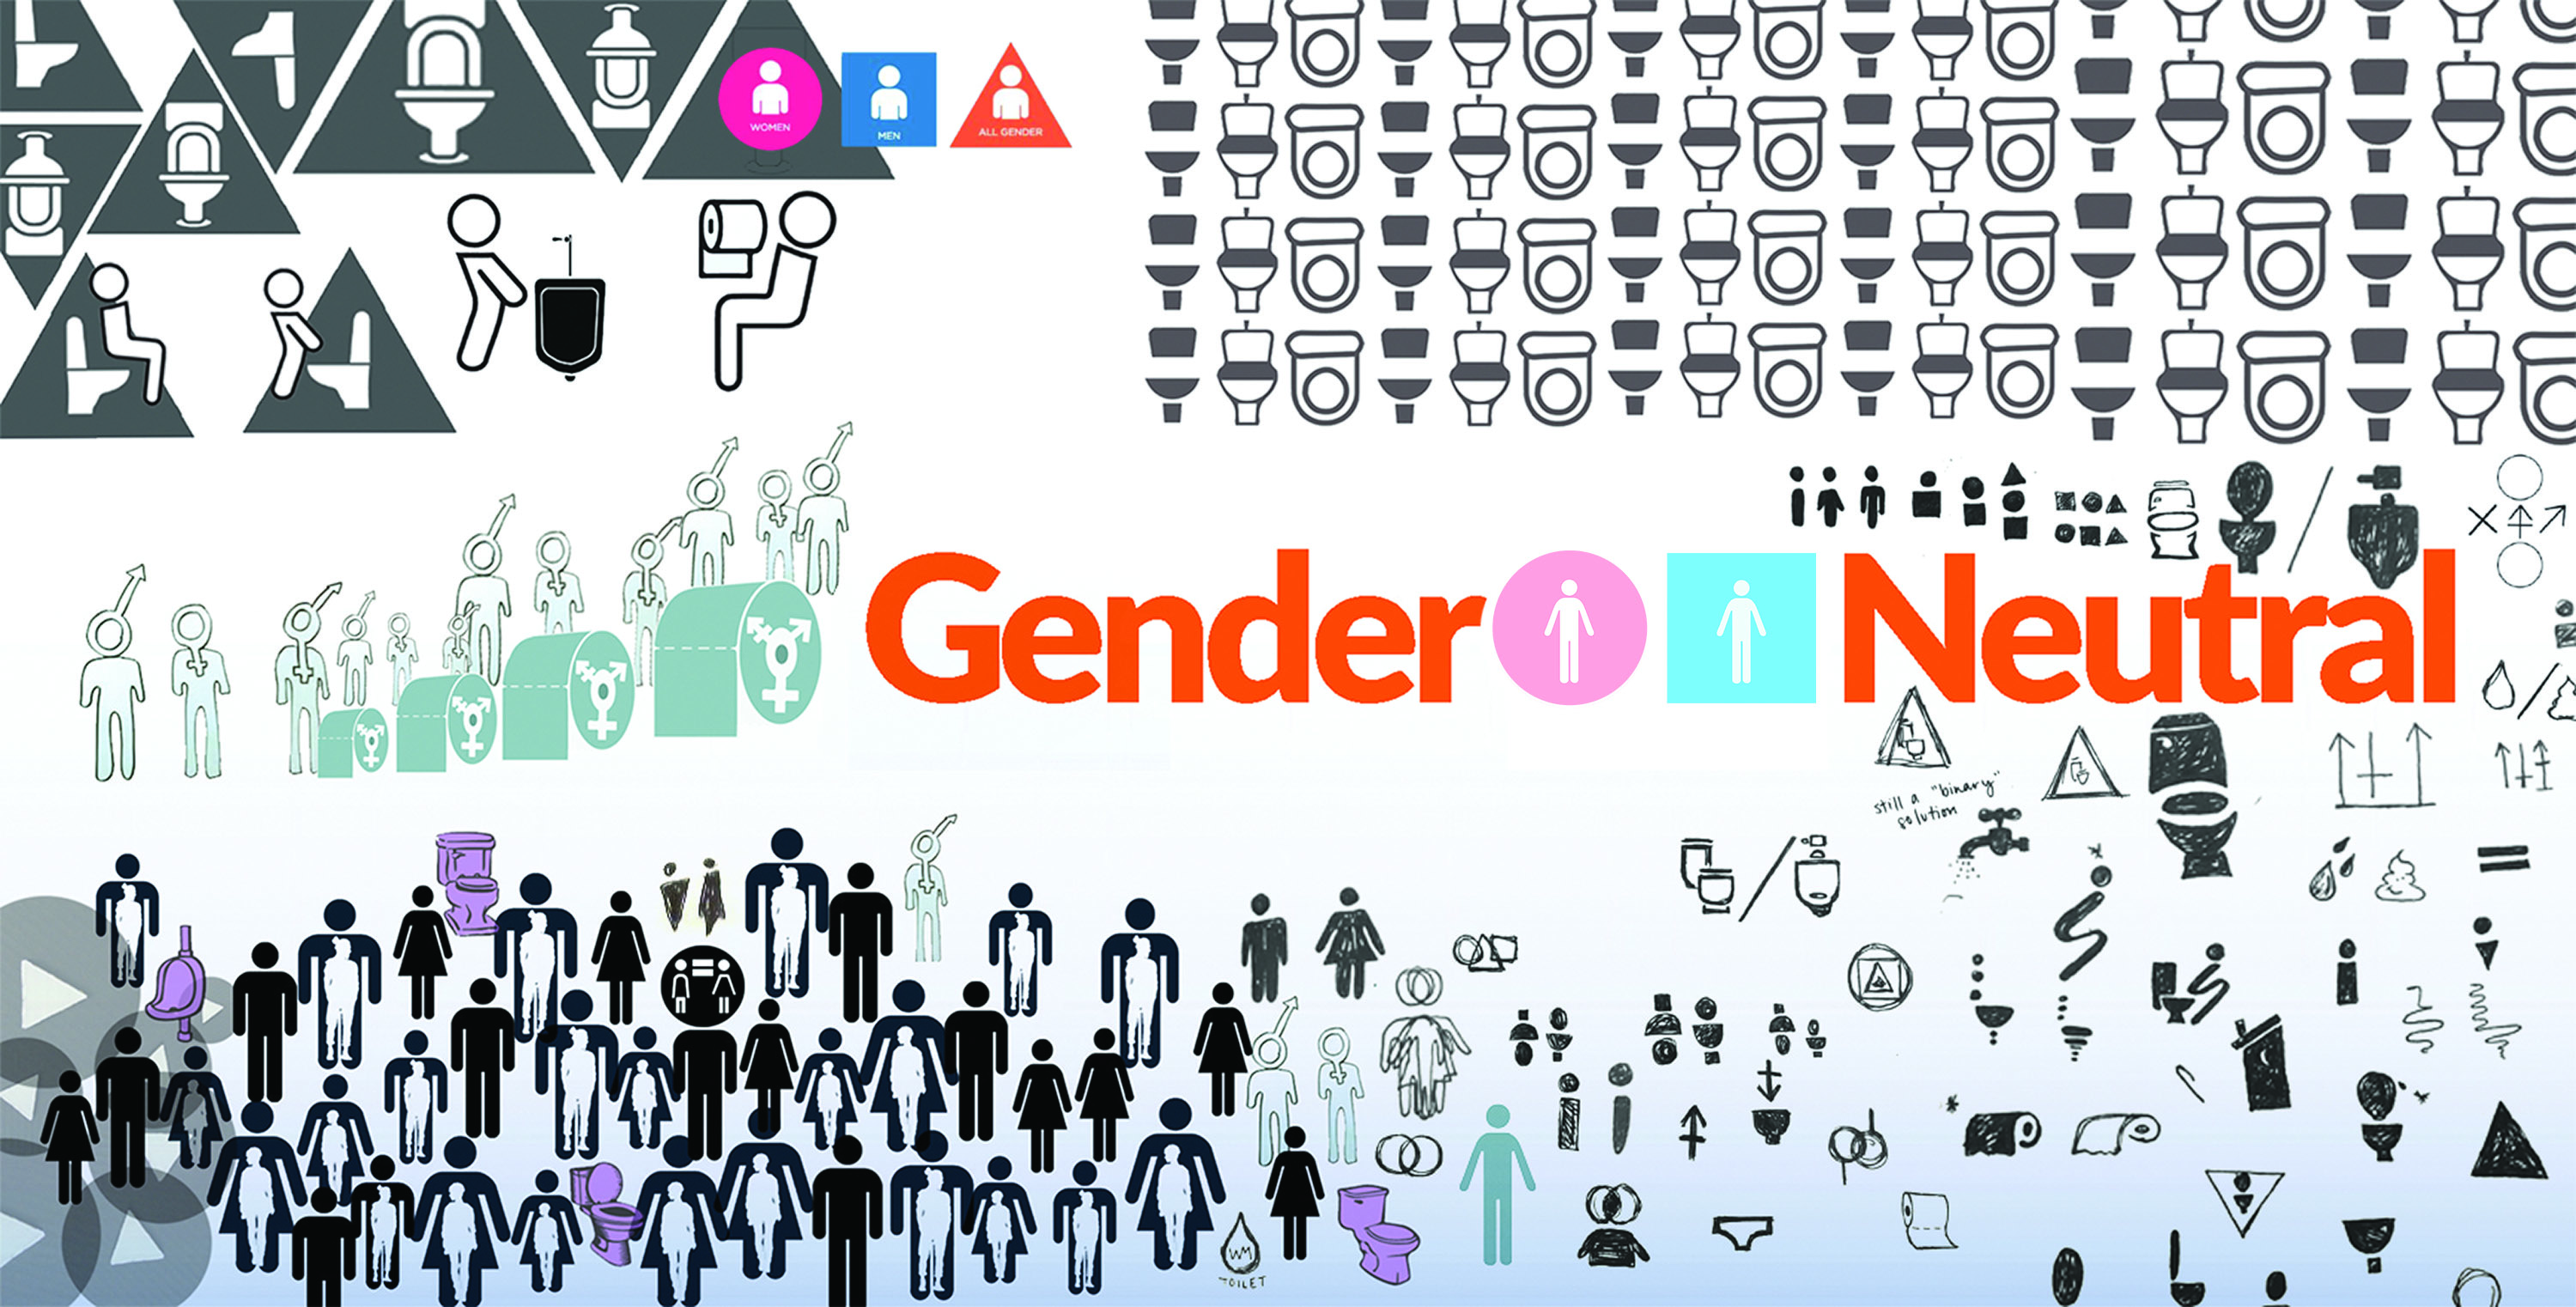 Figure 15.: O'Gender Agenda 2': Gender Neutral. This Loyola Marymount University & Azusa Pacific University undergraduate social design project challenged students to engage in sketch explorations as a means to reimagine transgendered restroom signage. Source: Dobson, T. & Dobson, S.C. & Kirkpatrick, G. 2016.